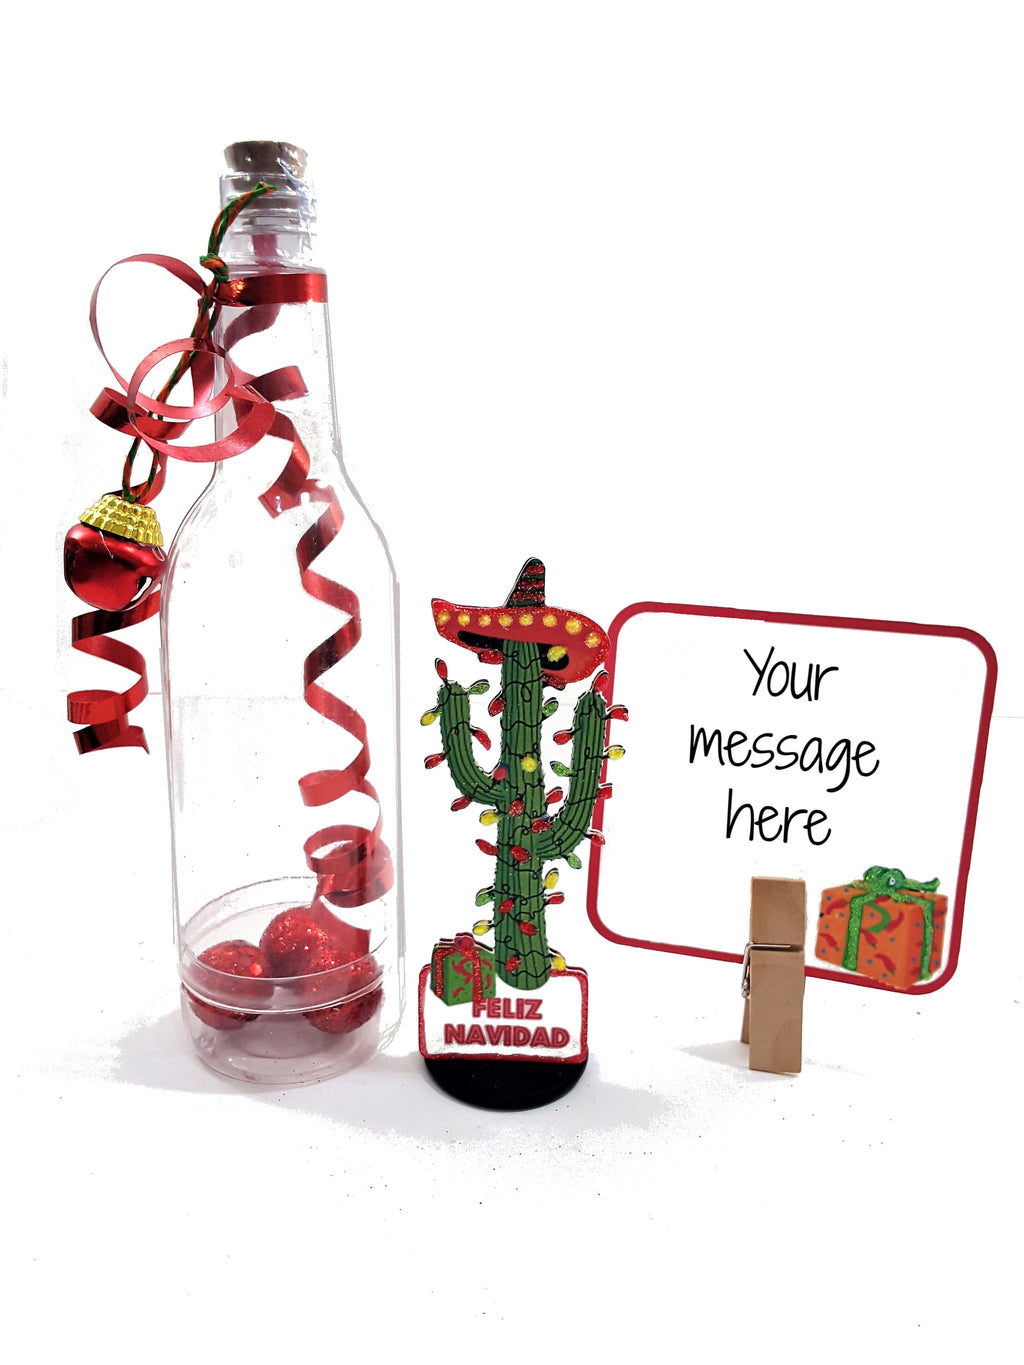 3D LIGHTED CHRISTMAS CACTUS IN A BOTTLE GREETING CARD GIFT